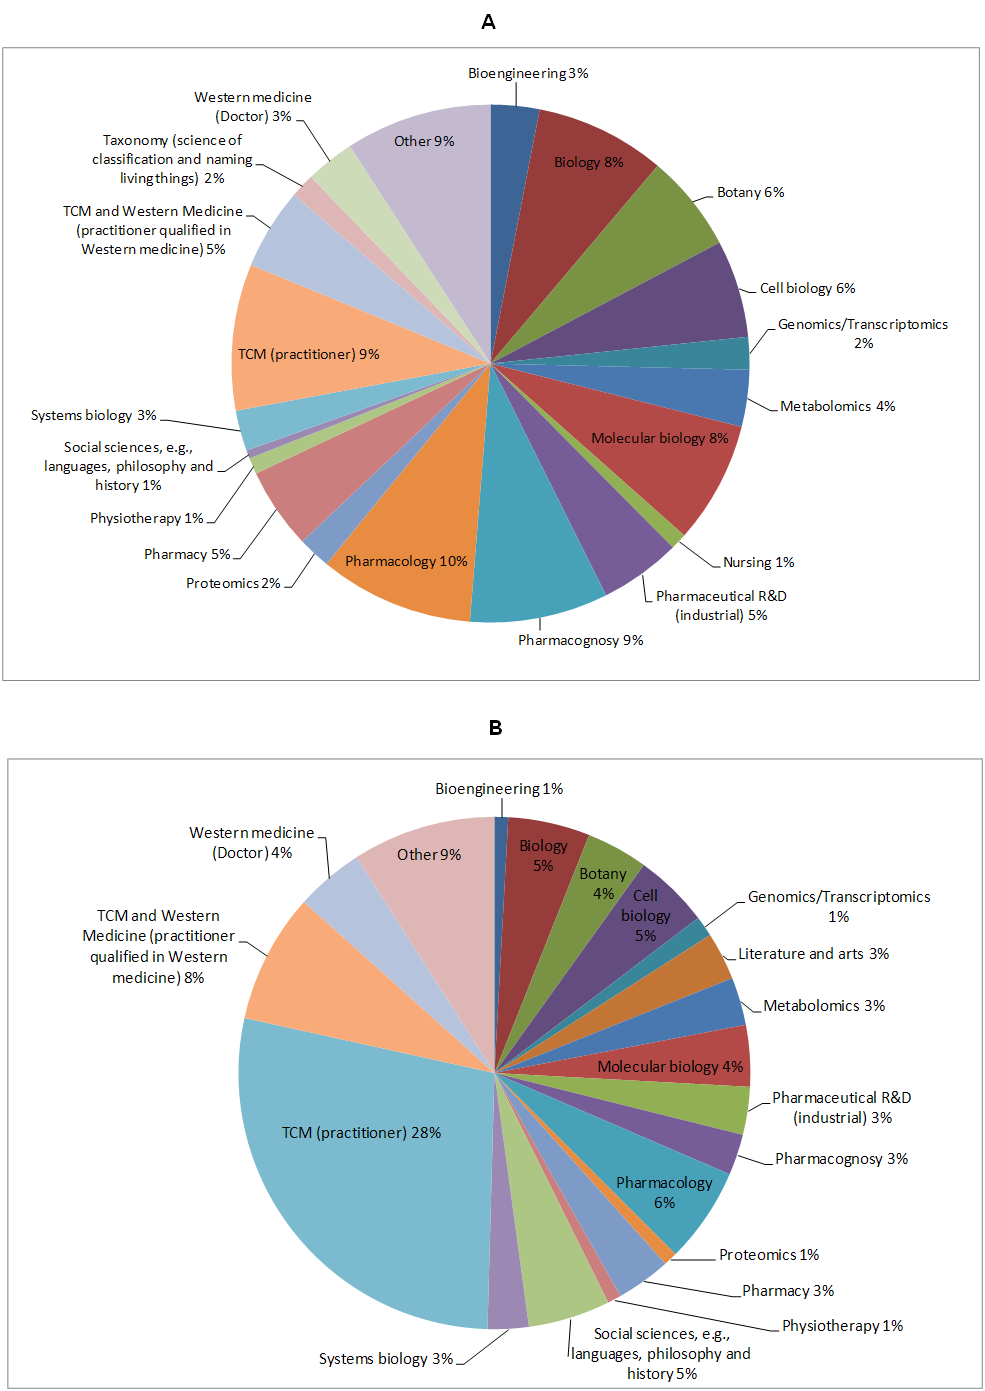 Figure 3. Expertise and specialty background of respondents. A: GP-TCM members; B: External participants.